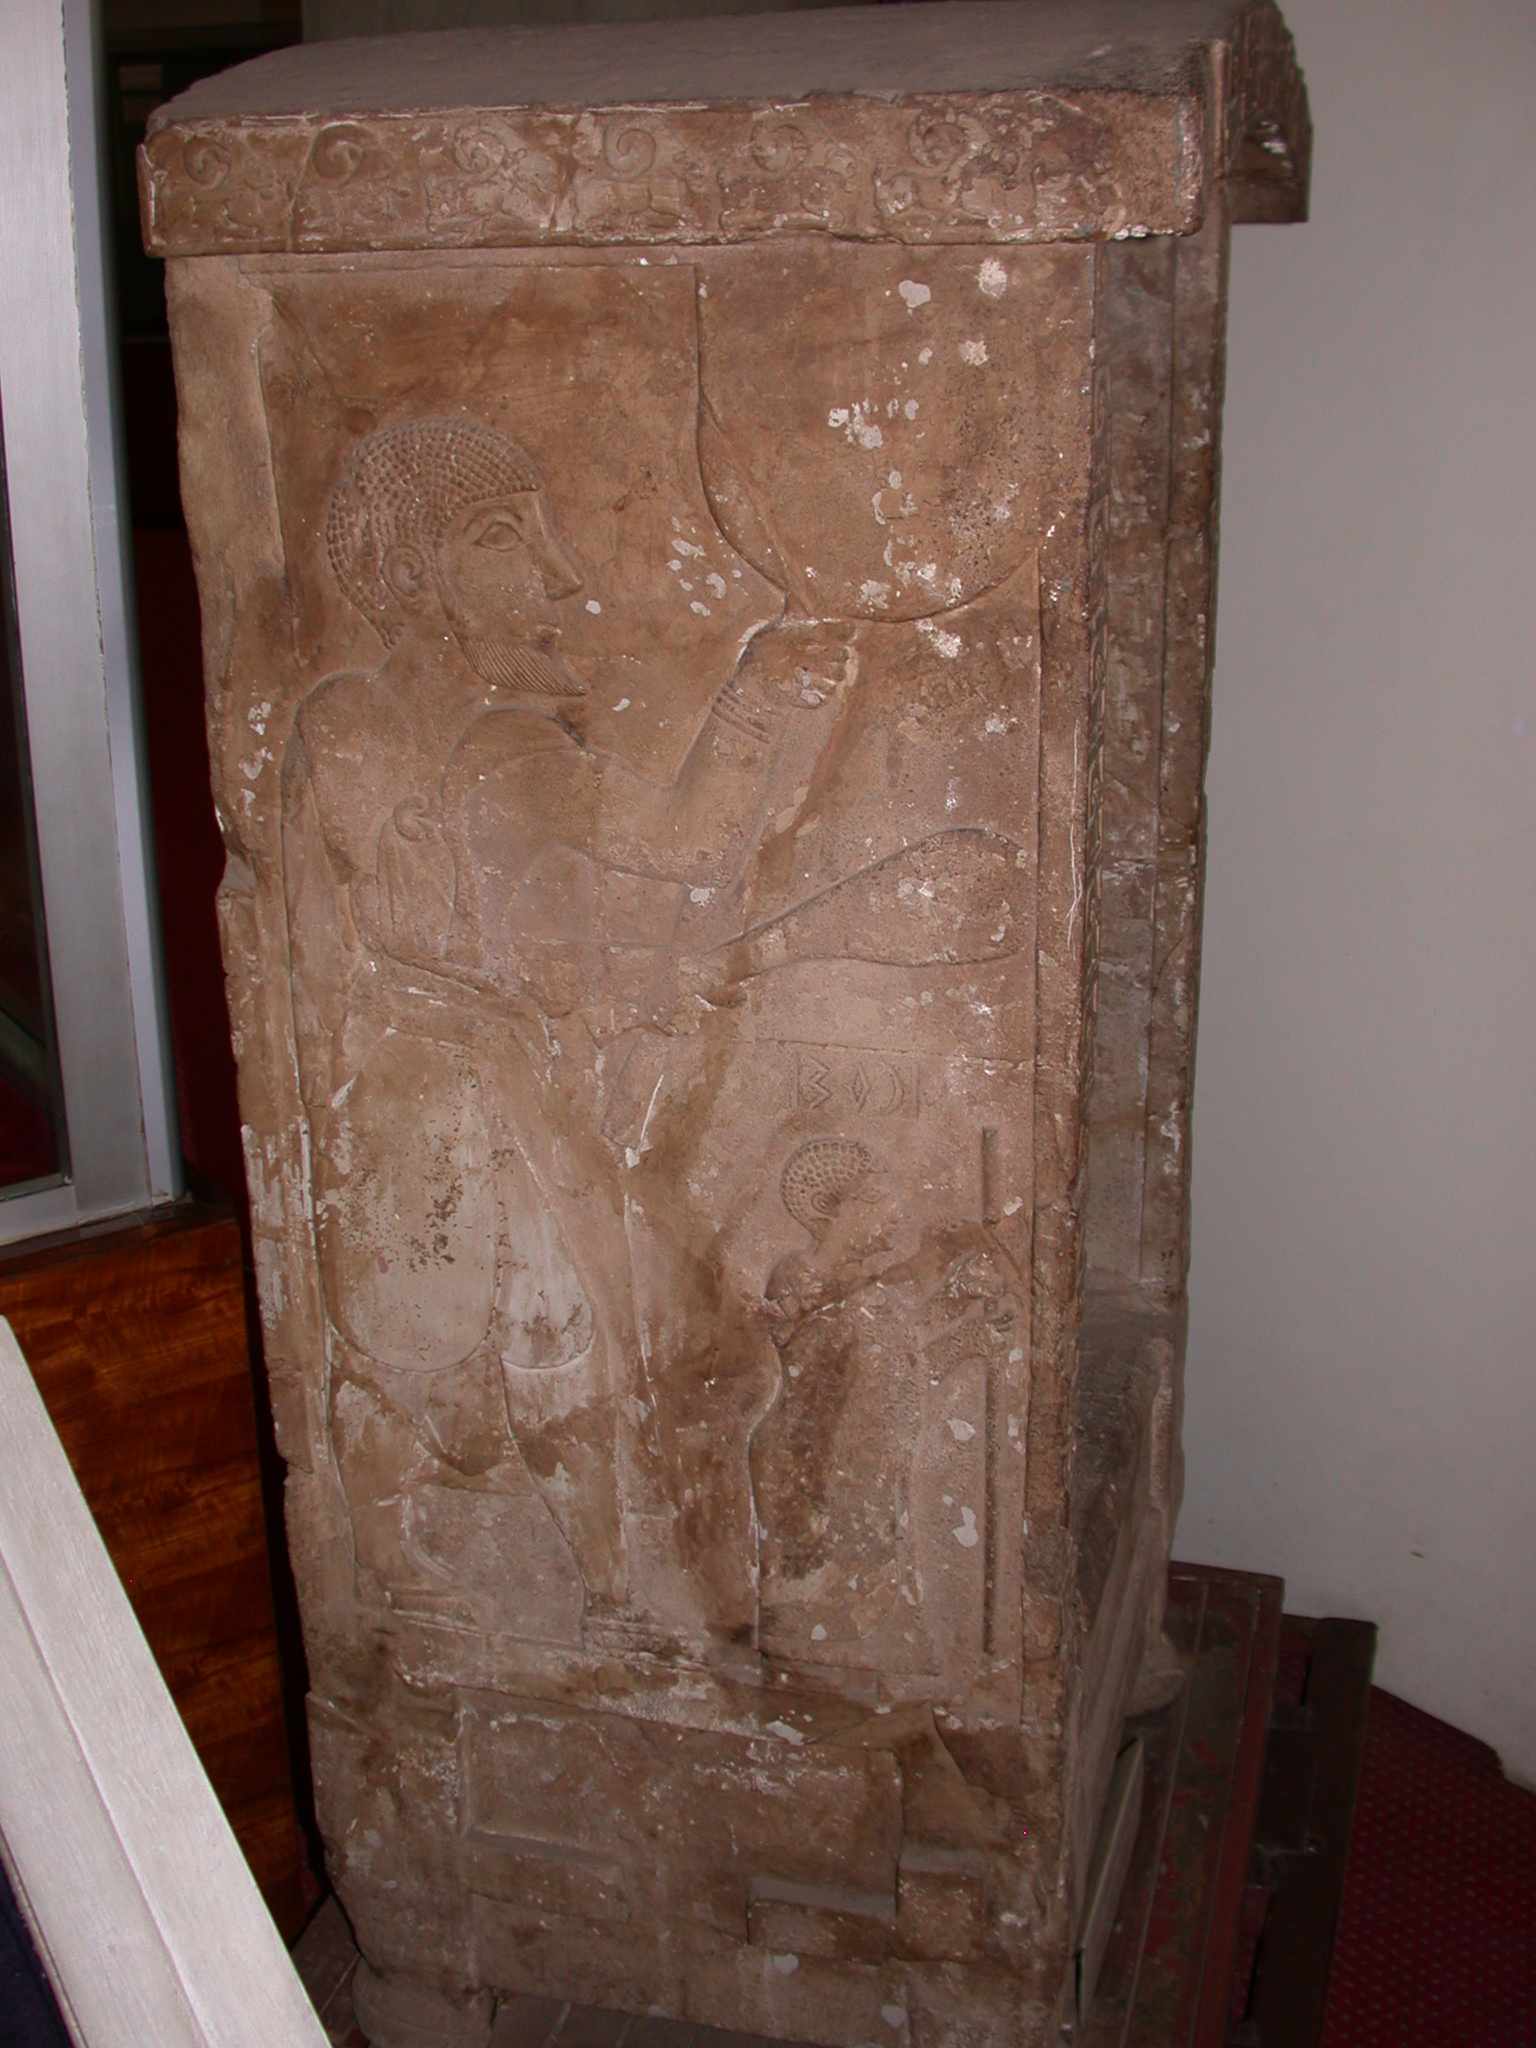 Limestone Seat Niche With Relief of Persons and Ibex (5th-4th century BCE) in Haoulti, Tigrai, Now Located in National Museum, Addis Ababa, Ethiopia